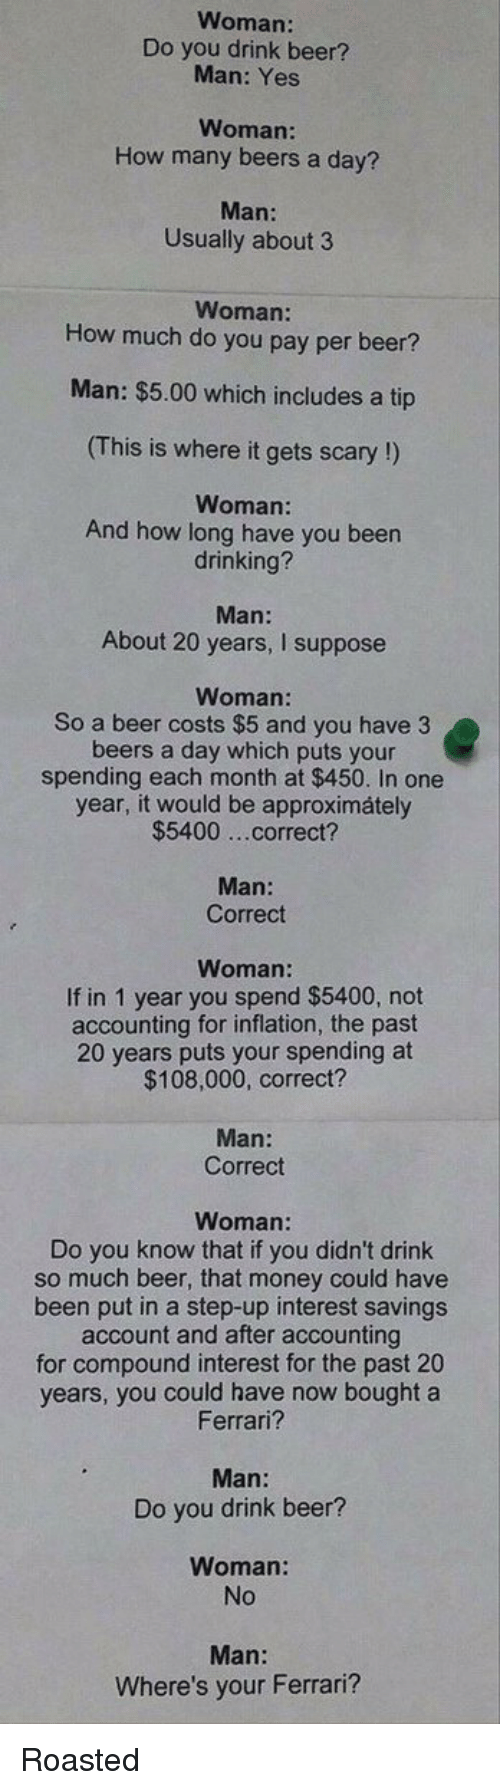 roast: Woman:  Do you drink beer?  Man: Yes  Woman:  How many beers a day?  Man:  Usually about 3  Woman:  How much do you pay per beer?  Man: $5.00 which includes a tip  (This is where it gets scary!)  Woman:  And how long have you been  drinking?  Man  About 20 years  I suppose  Woman:  So a beer costs $5 and you have 3  beers a day which puts your  spending each month at $450. In one  year, it would be approximately  $5400 ...correct?  Man:  Correct  If in 1 year you spend $5400, not  accounting for inflation, the past  20 years puts your spending at  $108,000, correct?  Man:  Correct  Woman:  Do you know that if you didn't drink  so much beer, that money could have  been put in a step-up interest savings  account and after accounting  for compound interest for the past 20  years, you could have now bought a  Ferrari?  Man:  Do you drink beer?  Woman:  Man:  Where's your Ferrari? Roasted